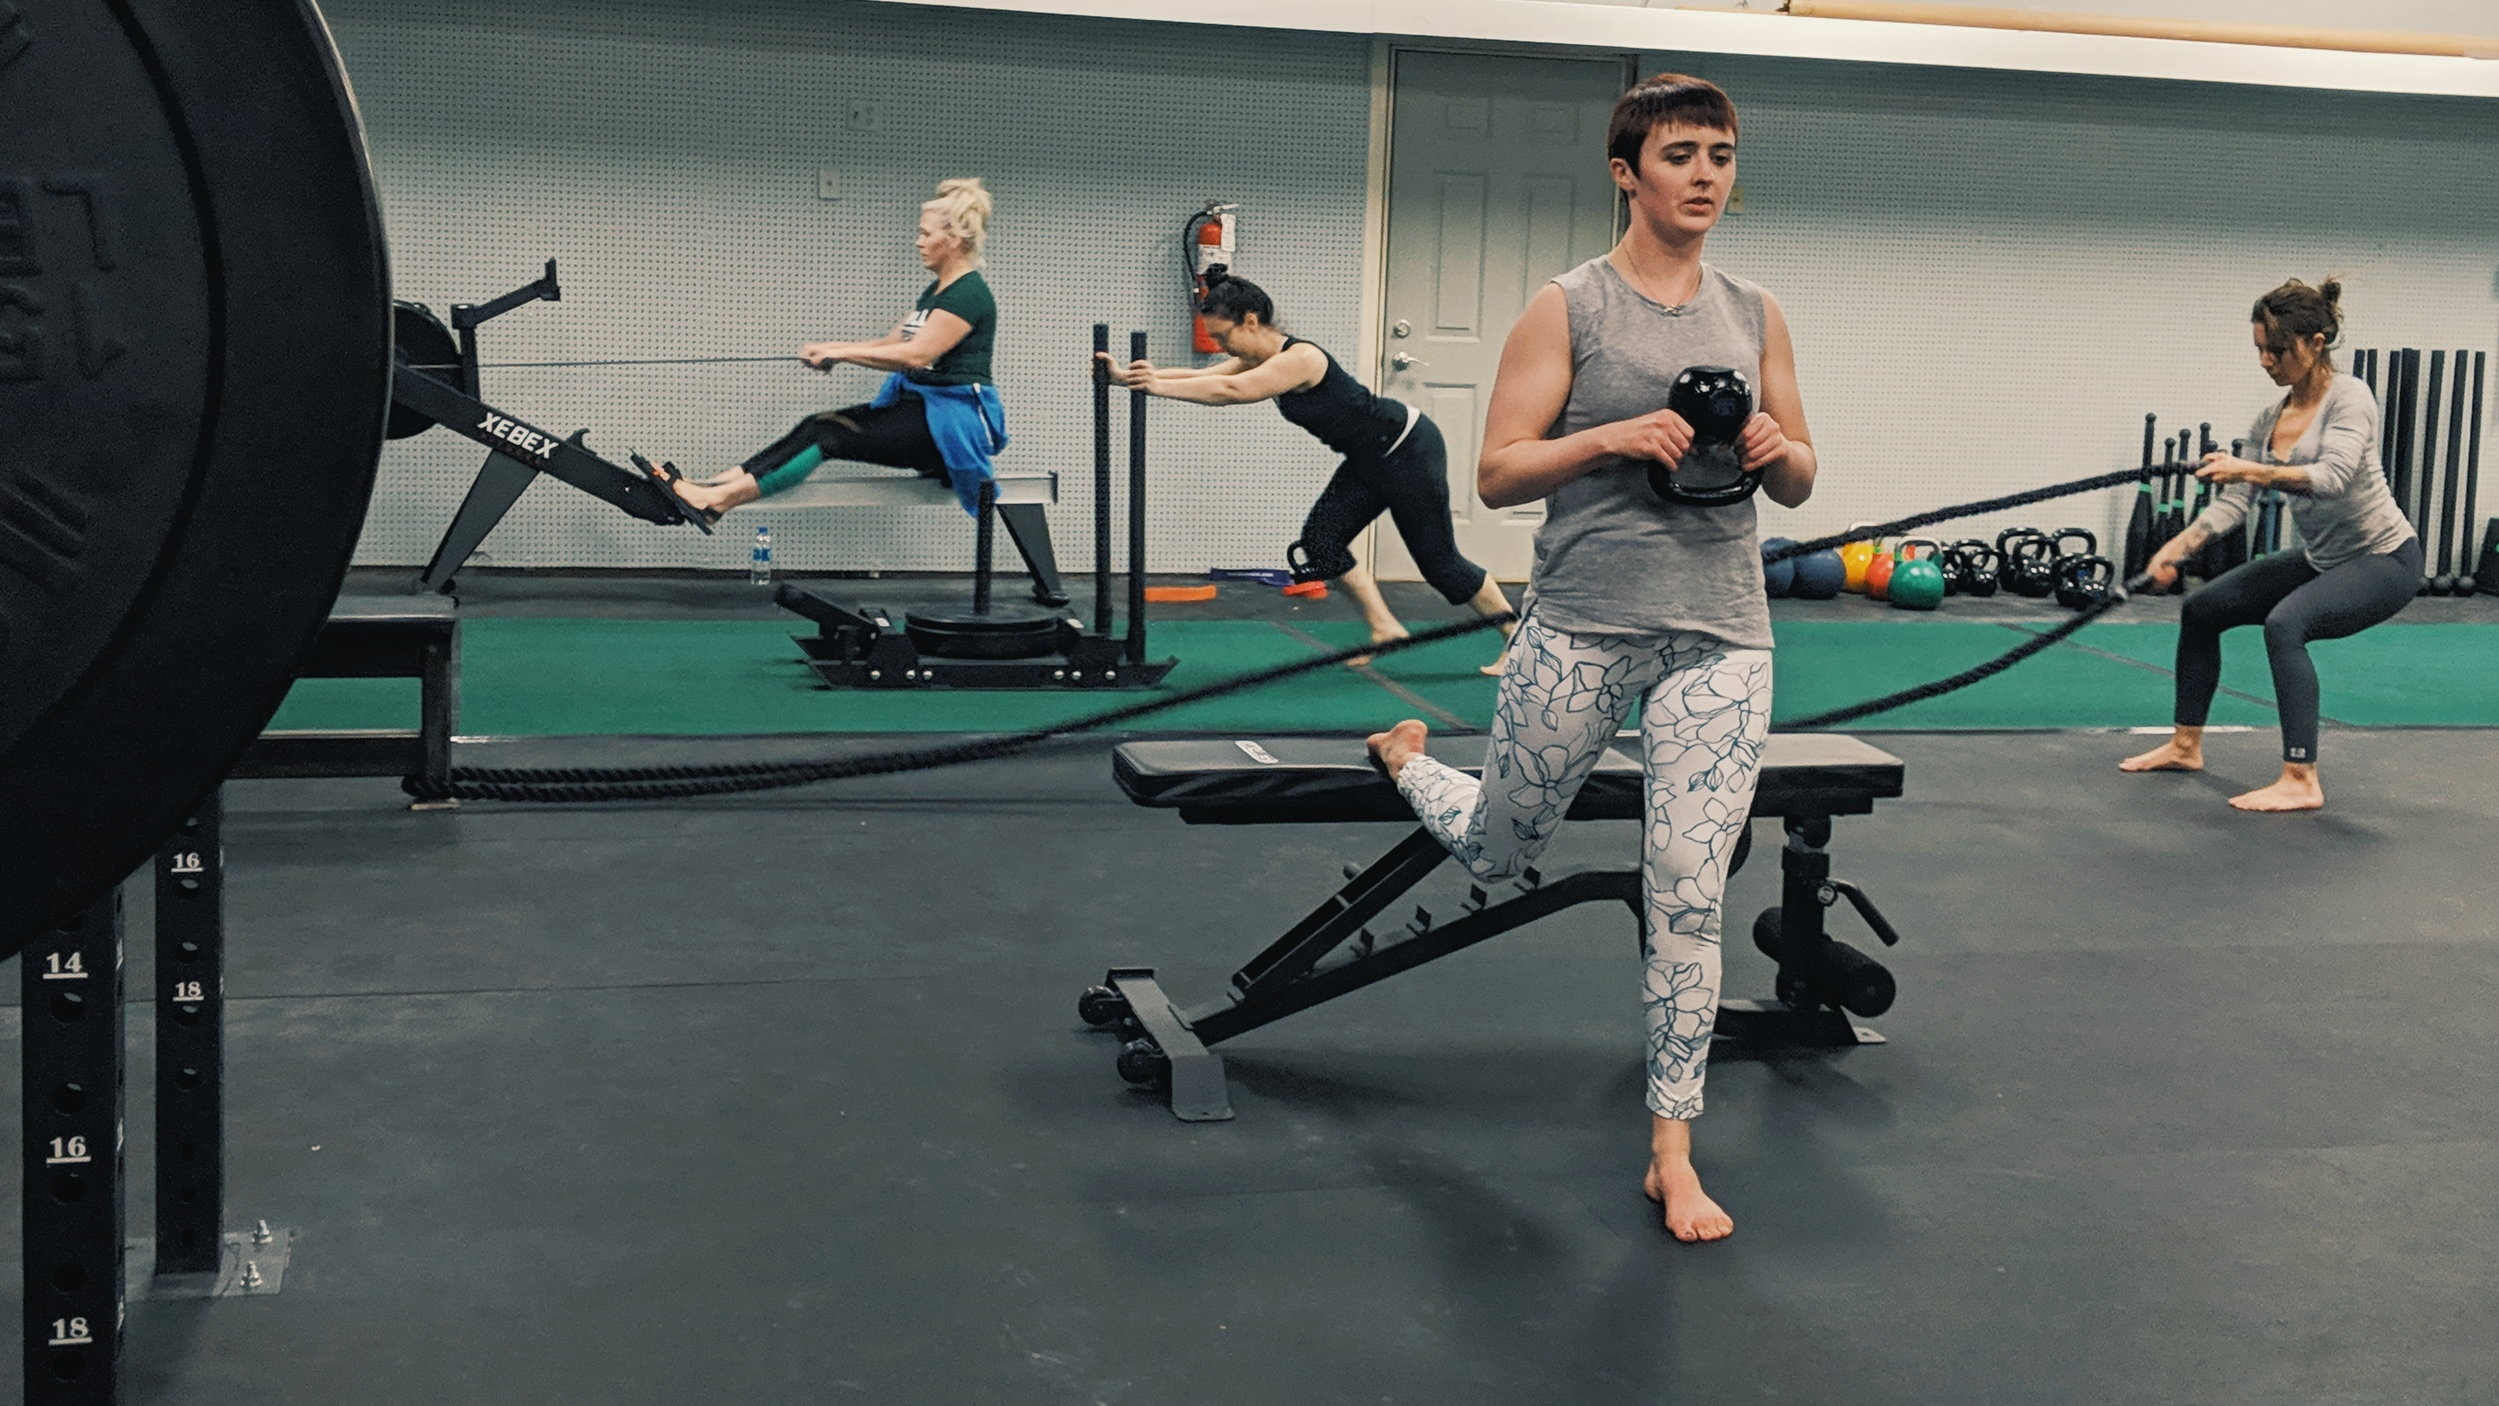 Flex Fit - Feel like an accomplished badass with workouts designed to challenge you physically and mentally. Battle ropes, sled drives, row machine, swings, jumps and pulls, you name it, we got you covered.This is High Intensity Interval Training at its finest.